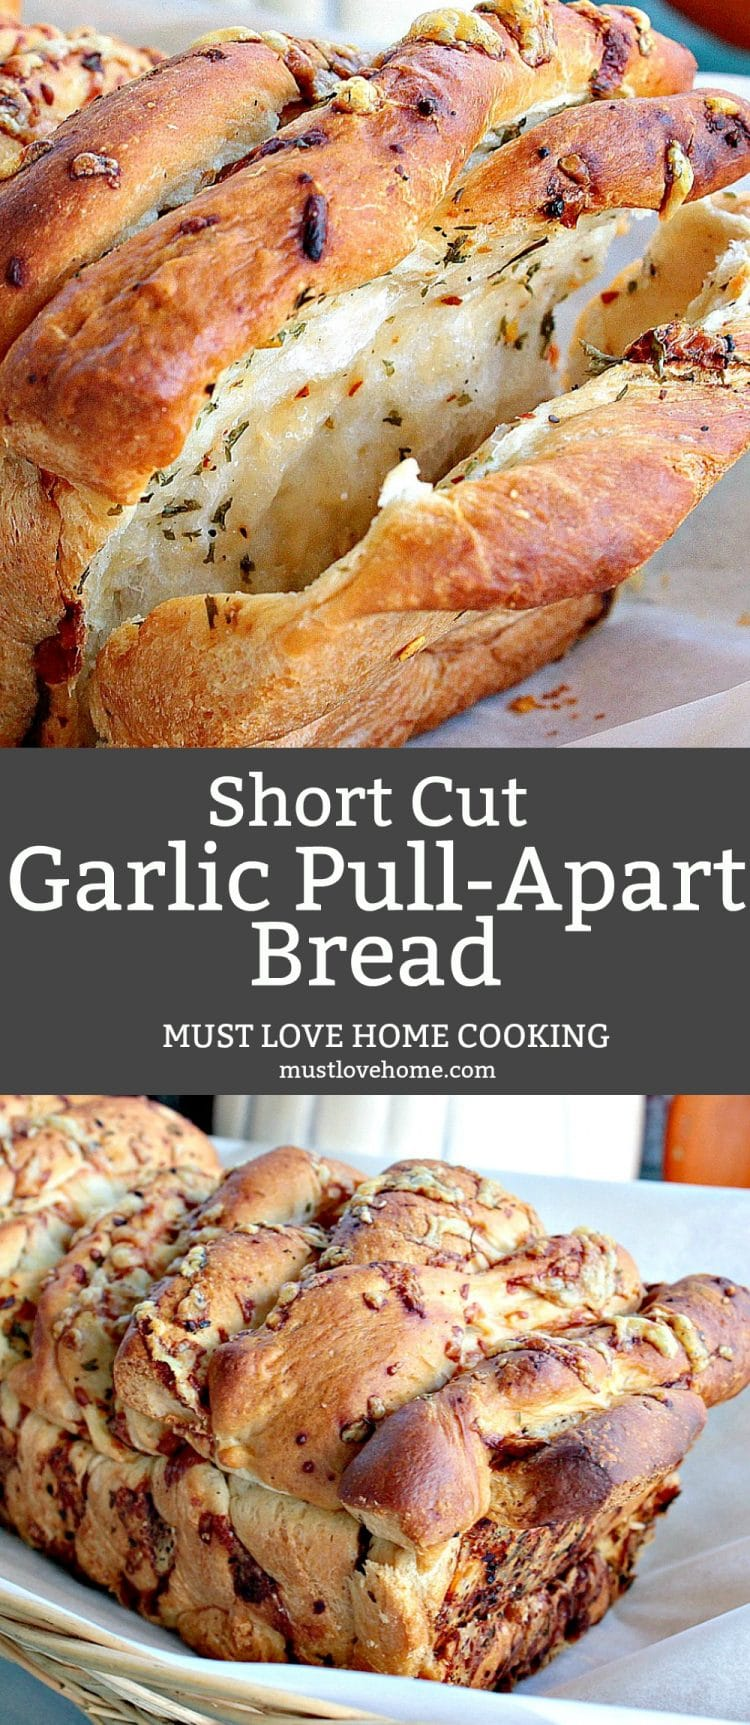 Garlic Parmesan Pull Apart Bread is a rustic, buttery loaf loaded with  flavor. It looks fancy but it could not be easier to make. No yeast or kneading to worry about  because this recipe uses frozen bread dough!